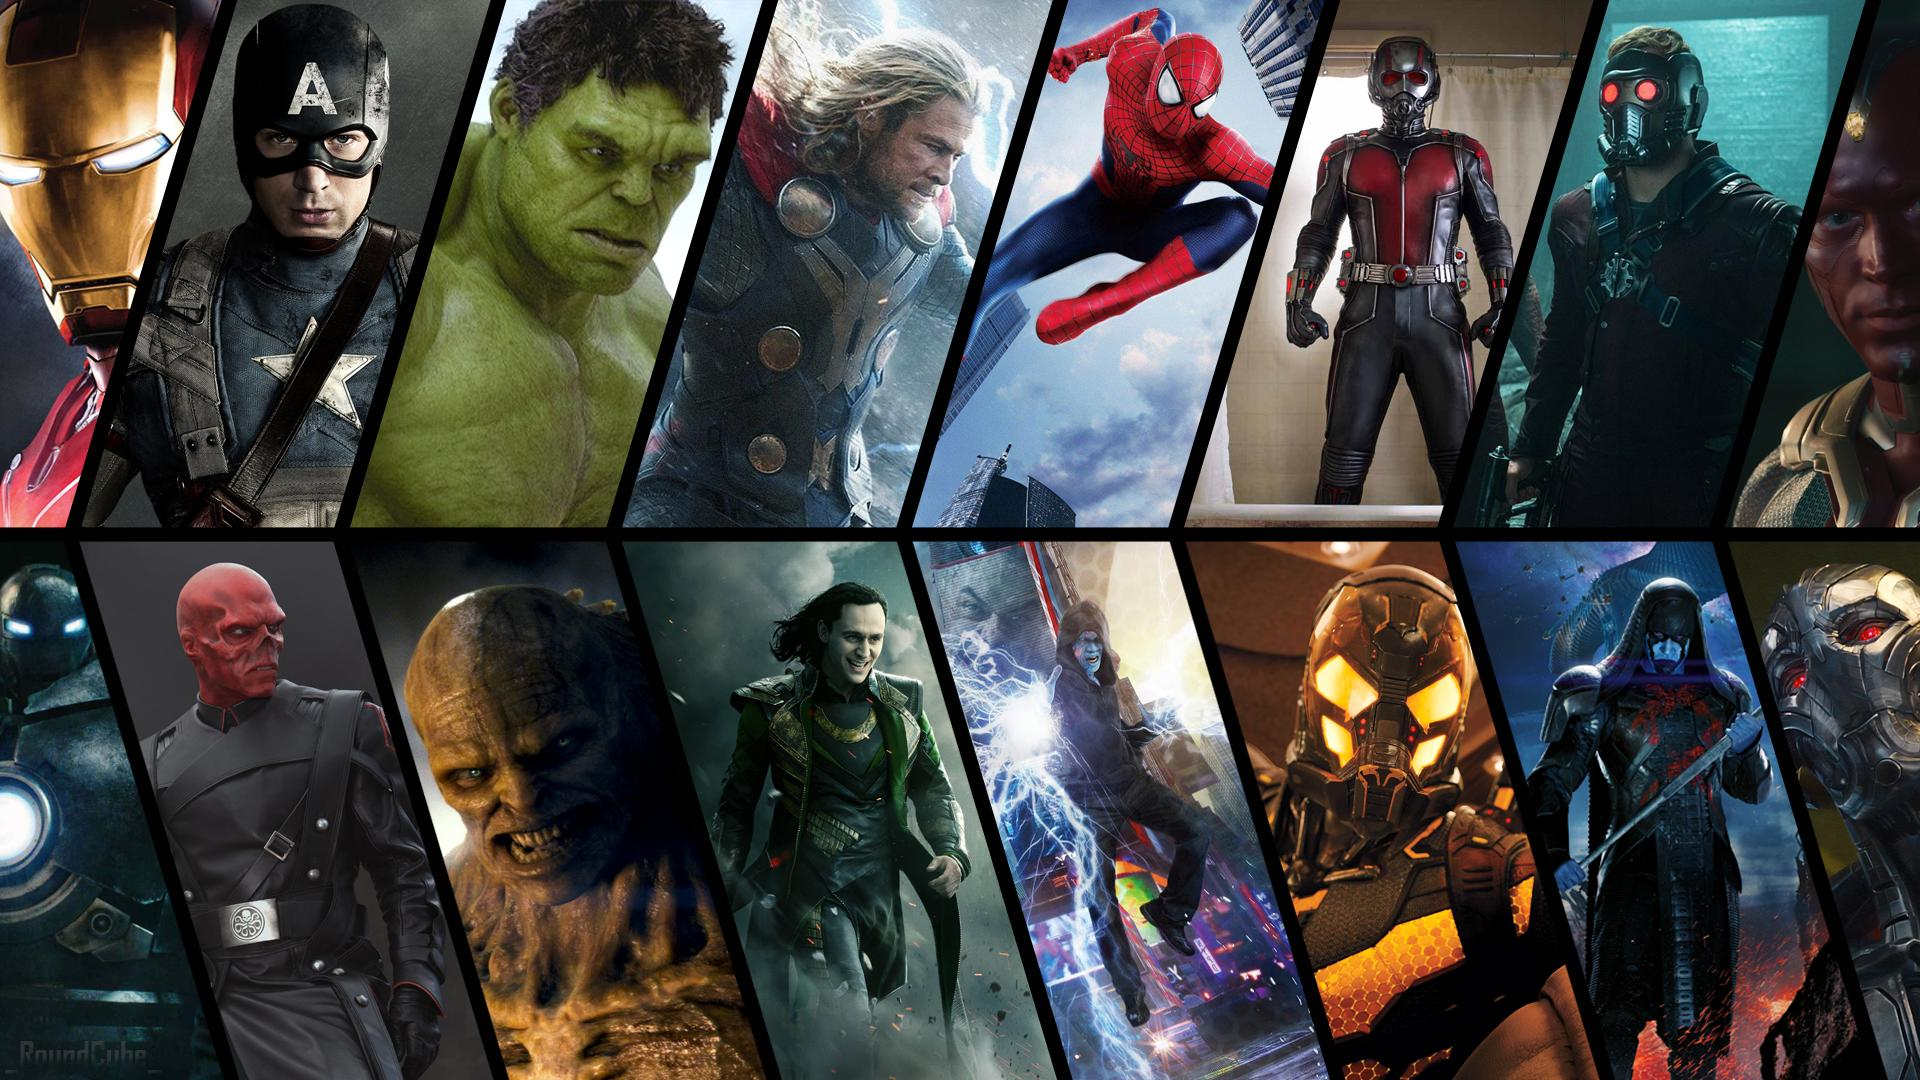 Hd Marvel Wallpaper Download 1920x1080